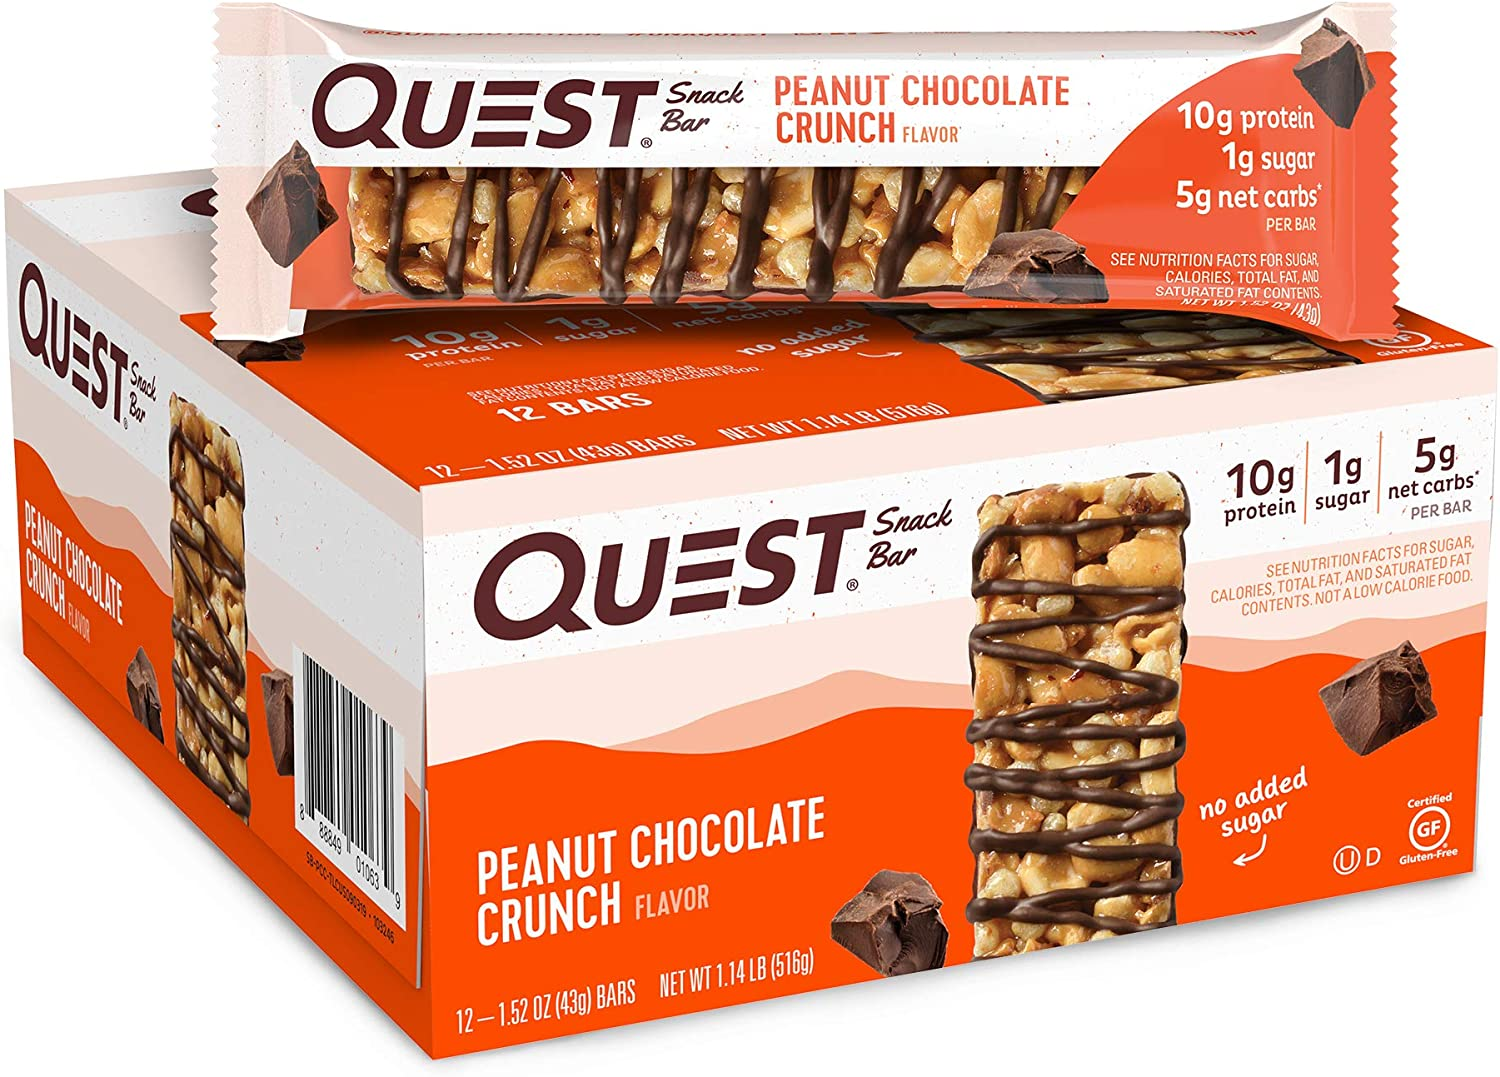 Quest Nutrition Peanut Chocolate Crunch Snack Bar, High Protein, Low Carb, Gluten Free, Keto Friendly, (12 Count of 1.52 oz Bars Each) 18.24 oz